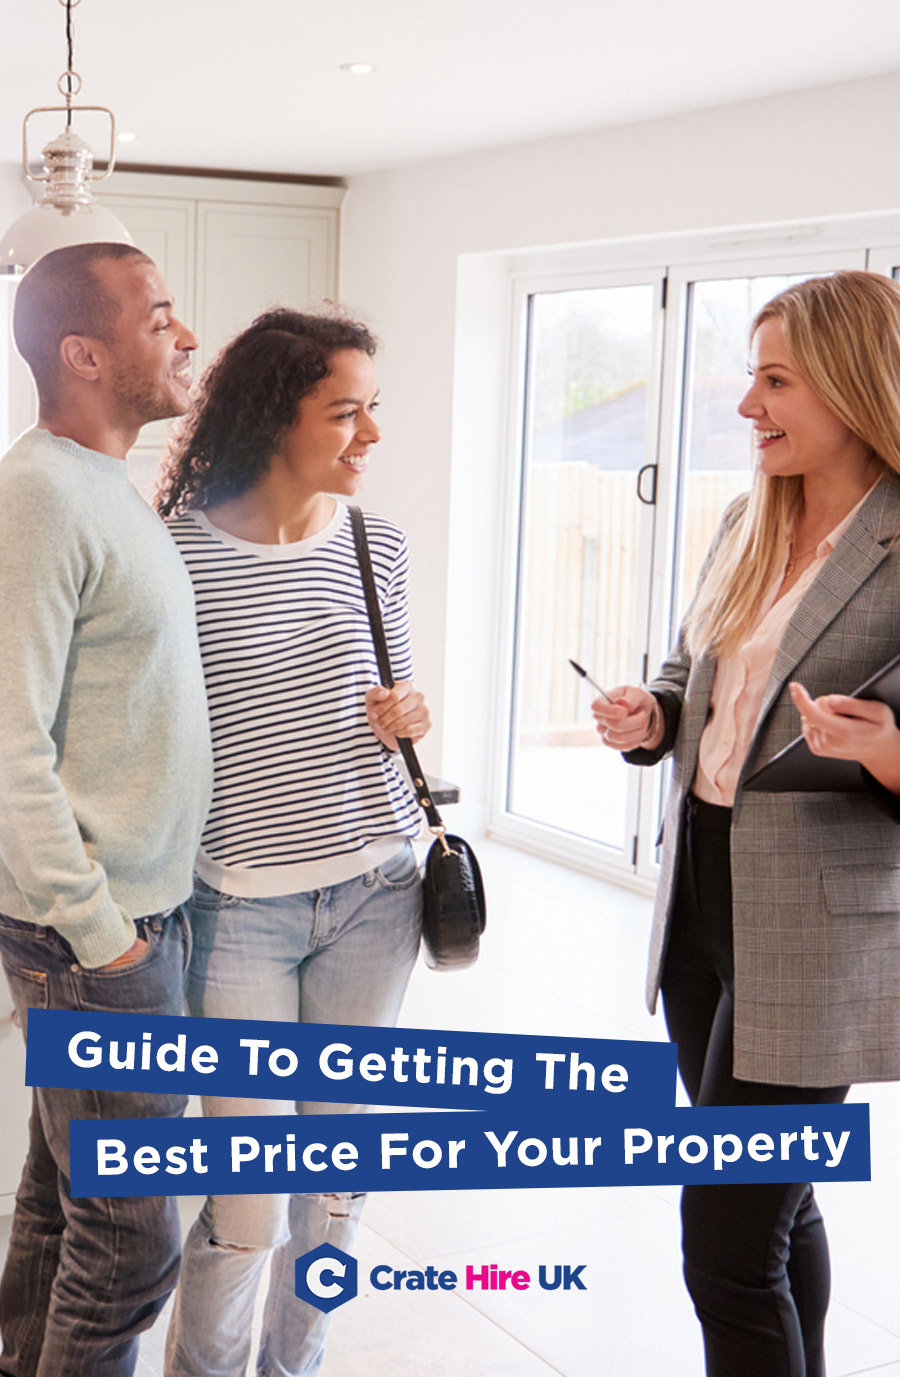 Guide to getting best price for property